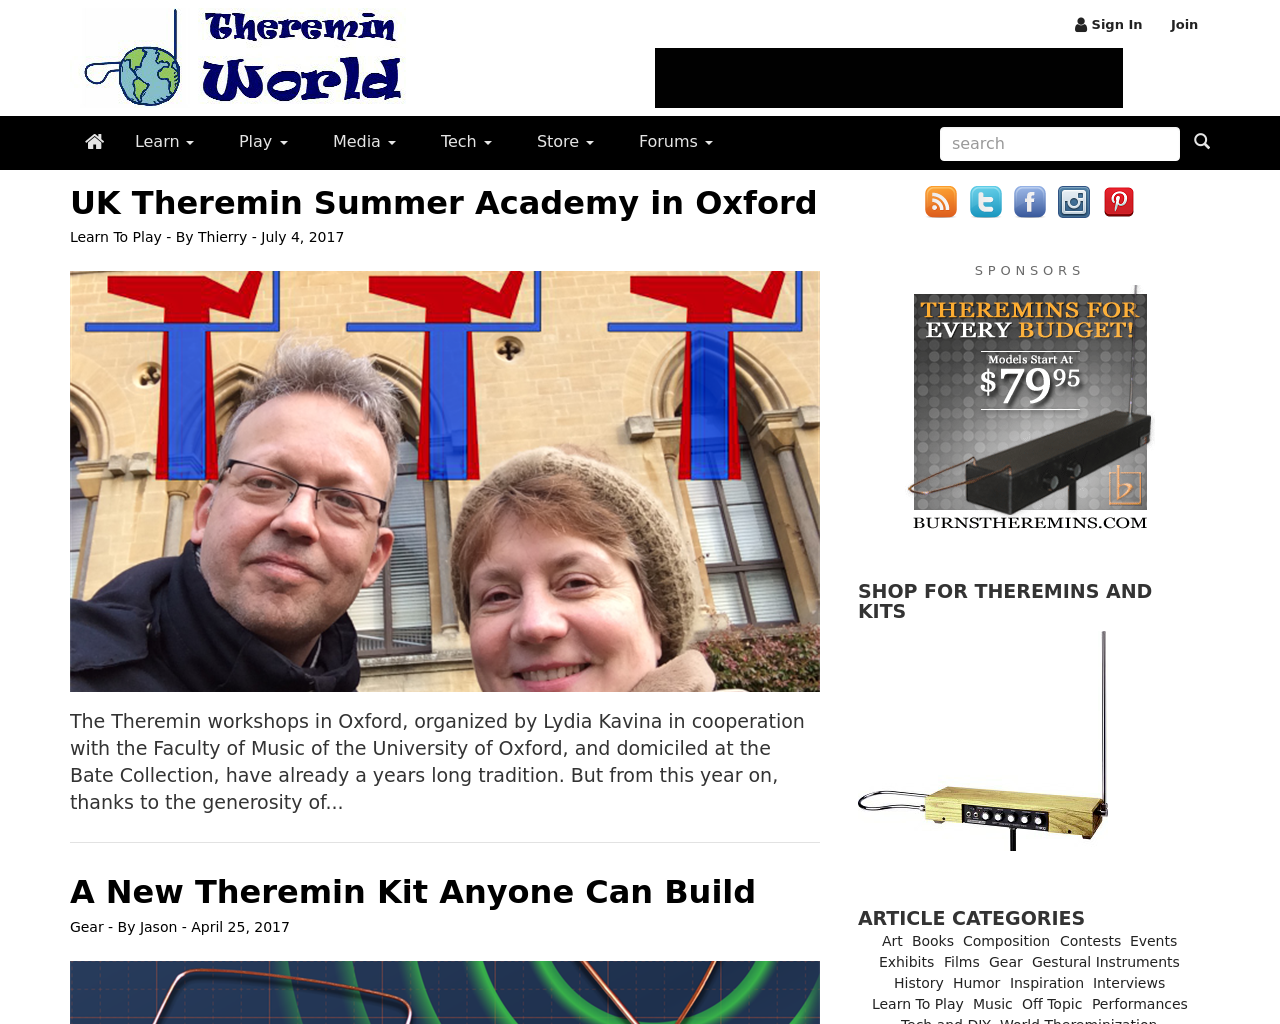 Theremin-World-Advertising-Reviews-Pricing